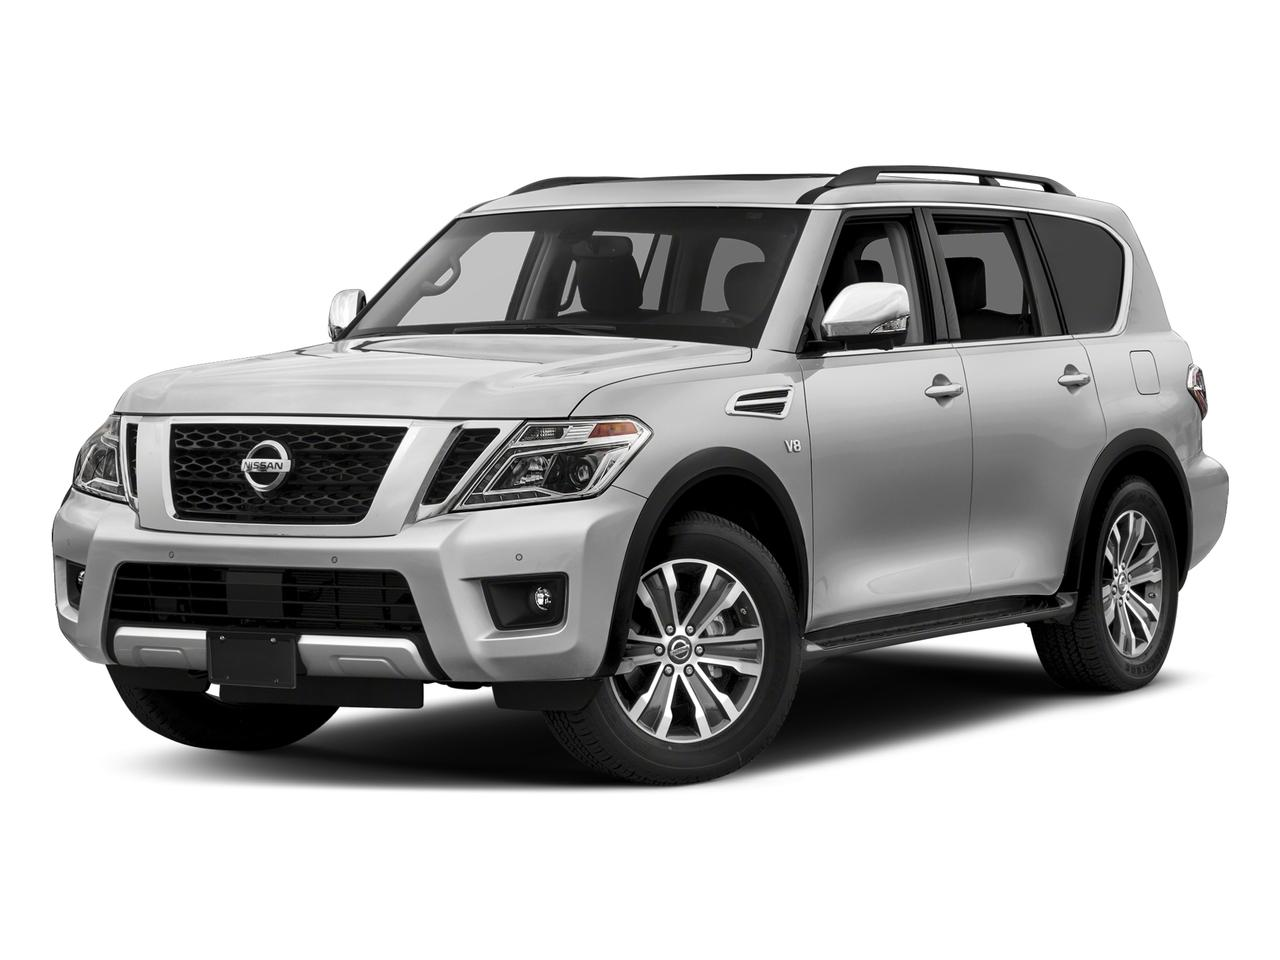 2017 Nissan Armada Vehicle Photo in San Antonio, TX 78257